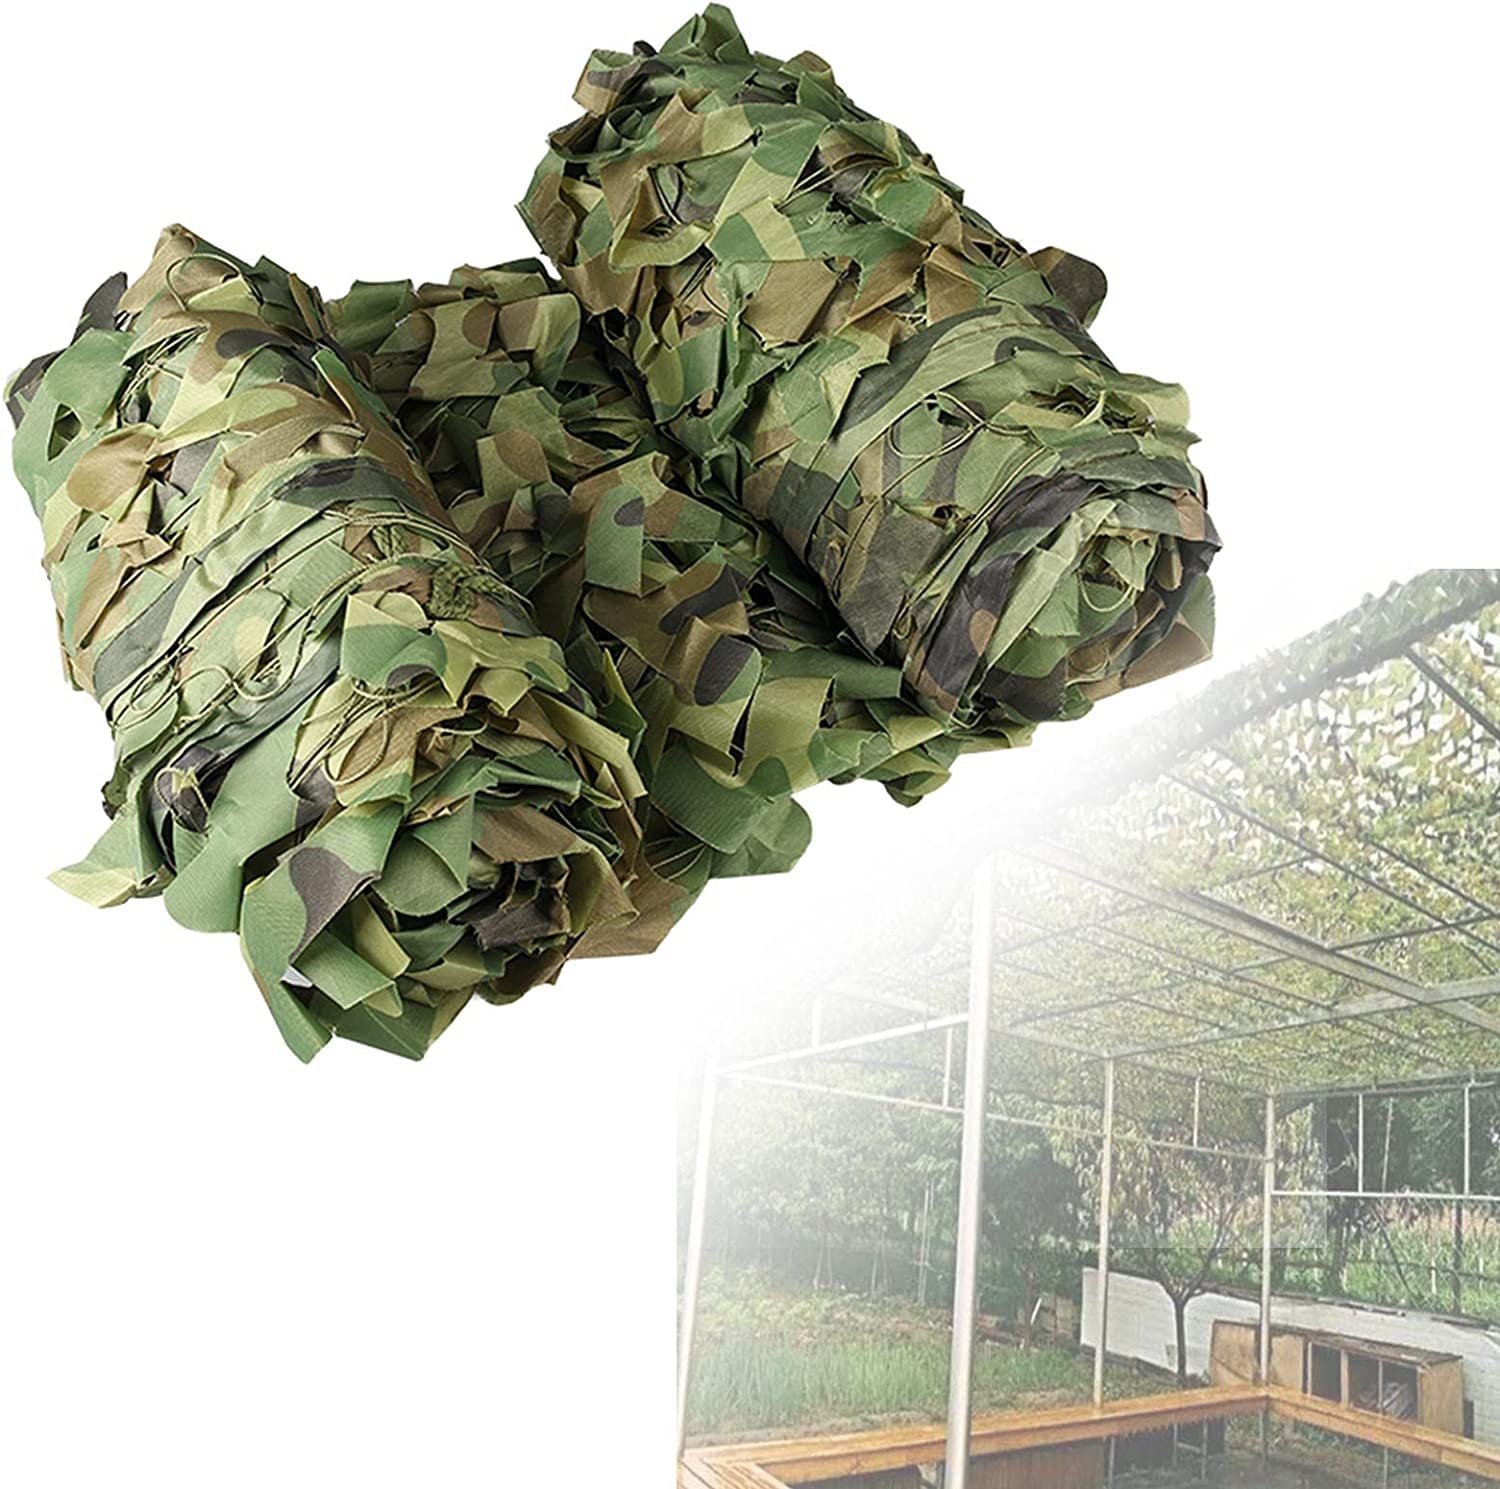 ZCBHSD Camouflage Net Jungle Camo Netting 4x6 3x5m sold Miami Mall out Woodland 3x4m